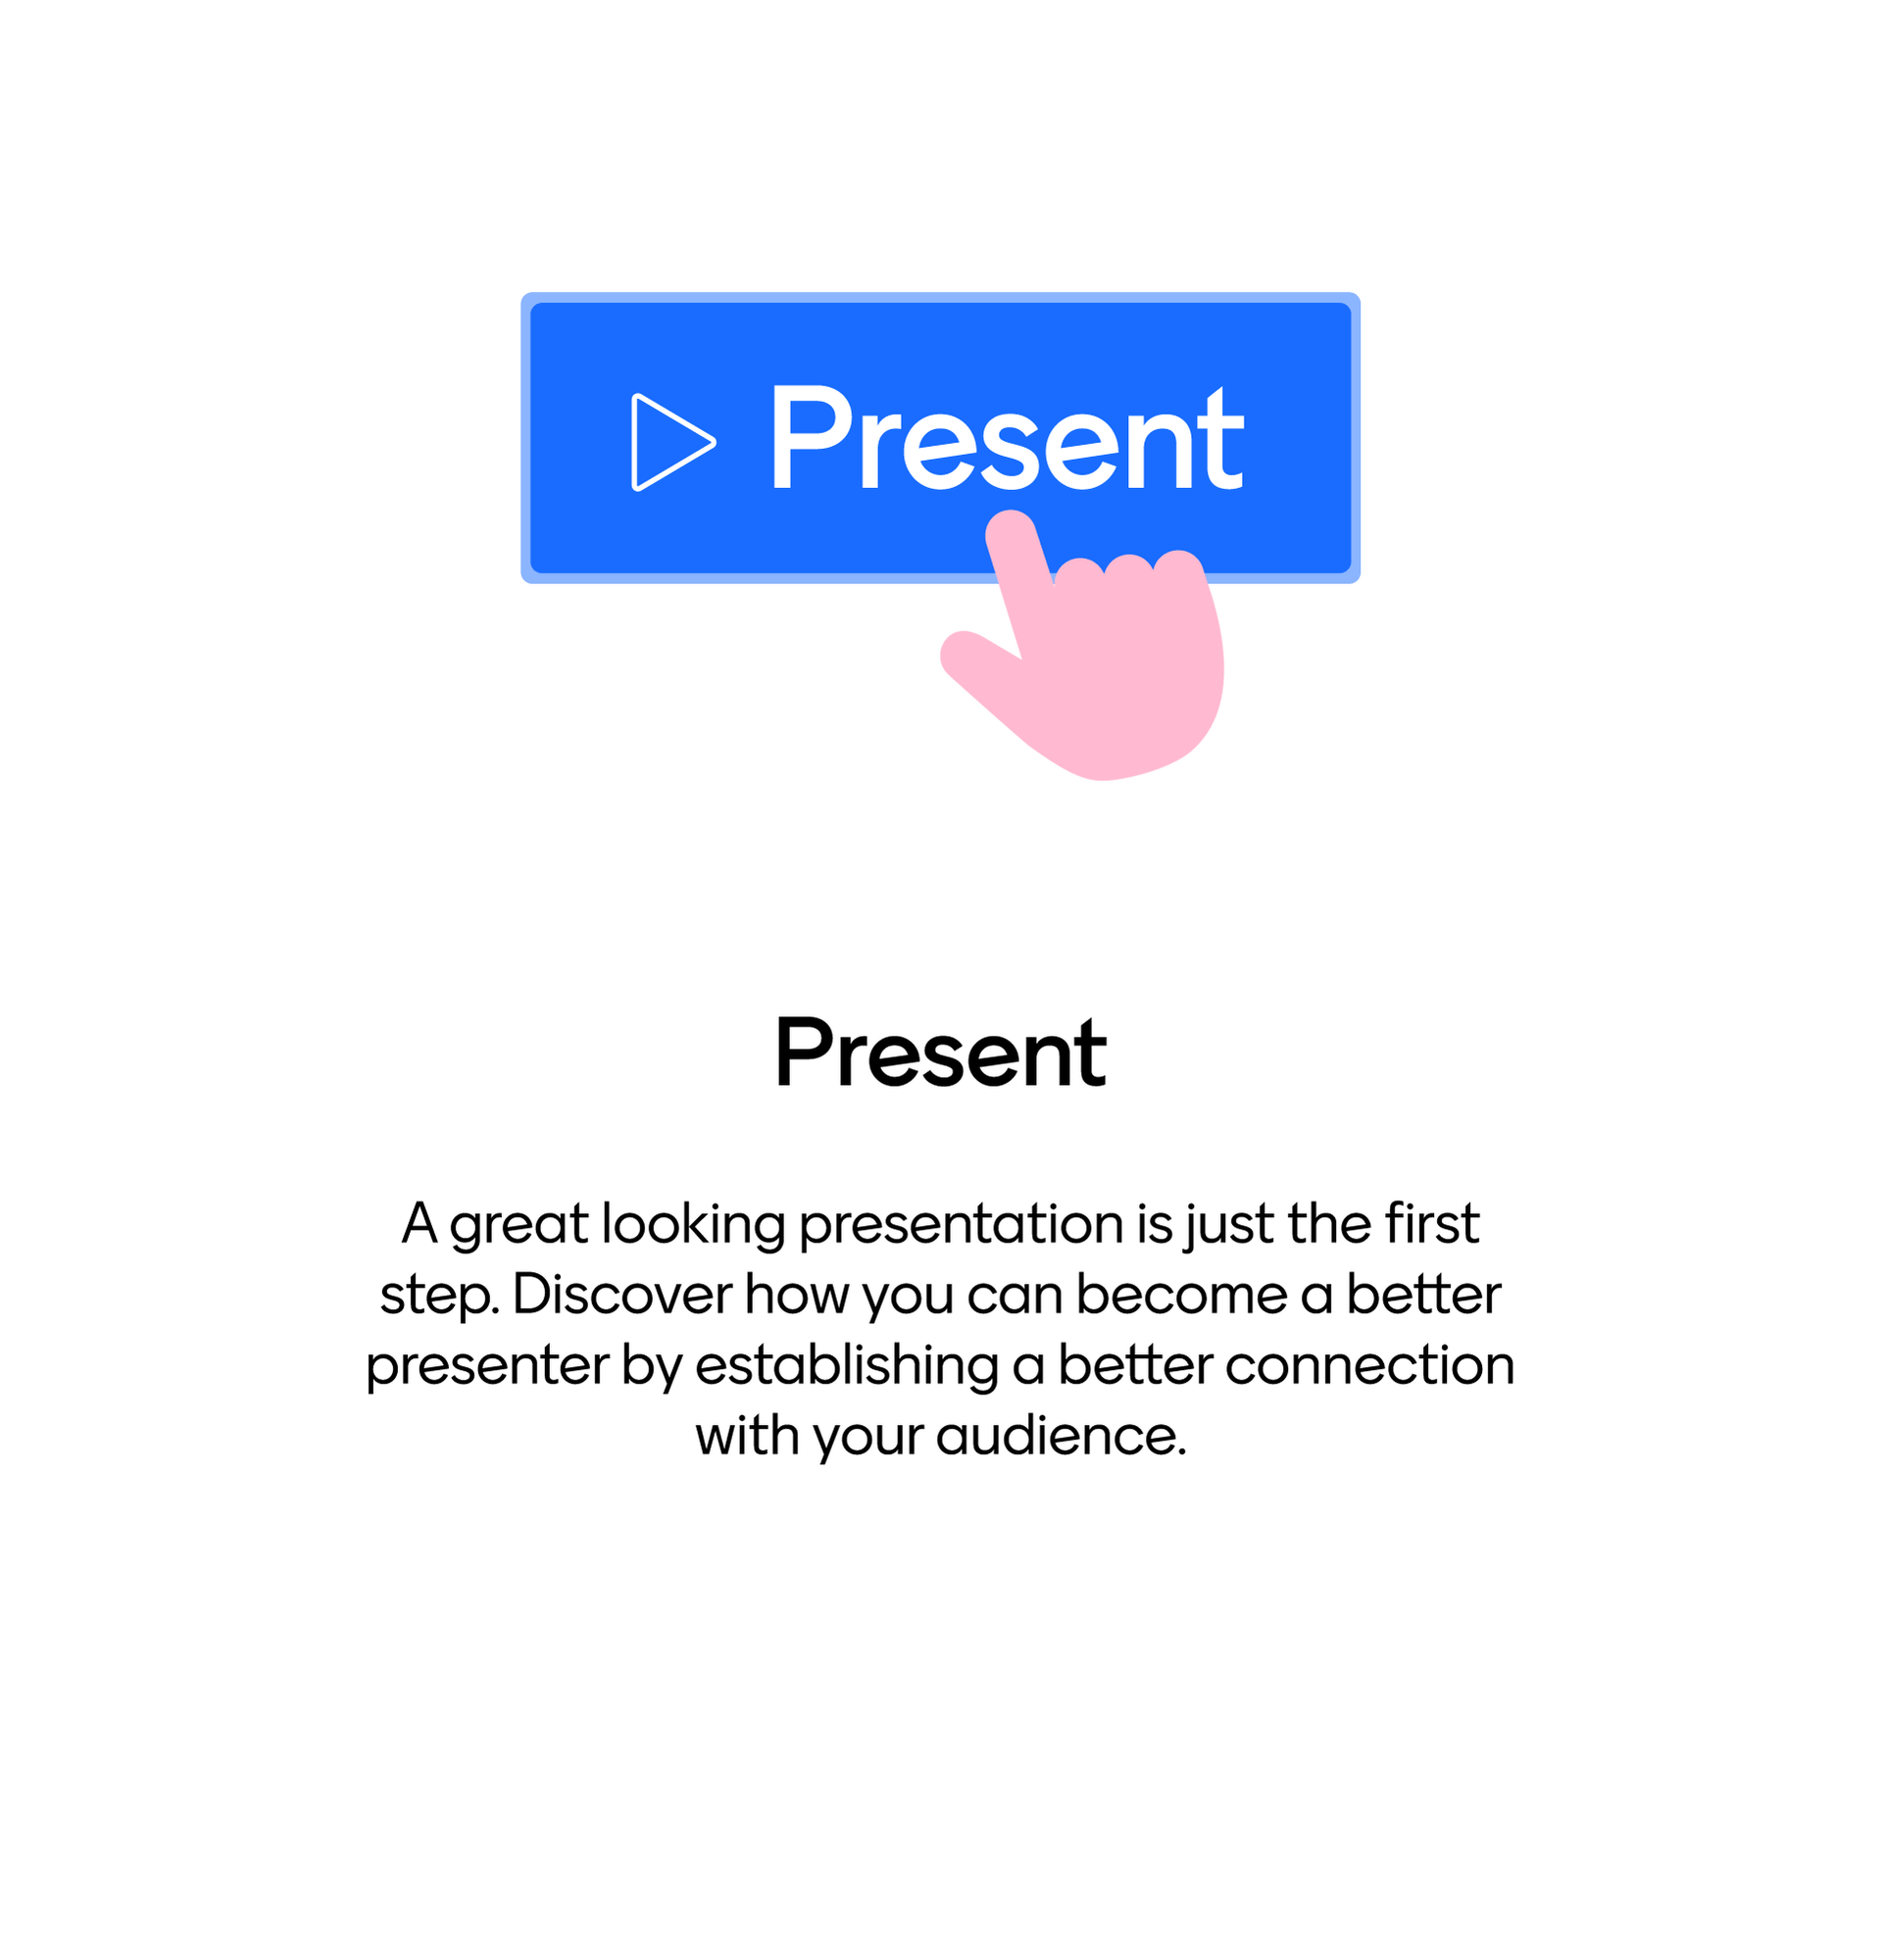 Become a better presenter, connect with your audience